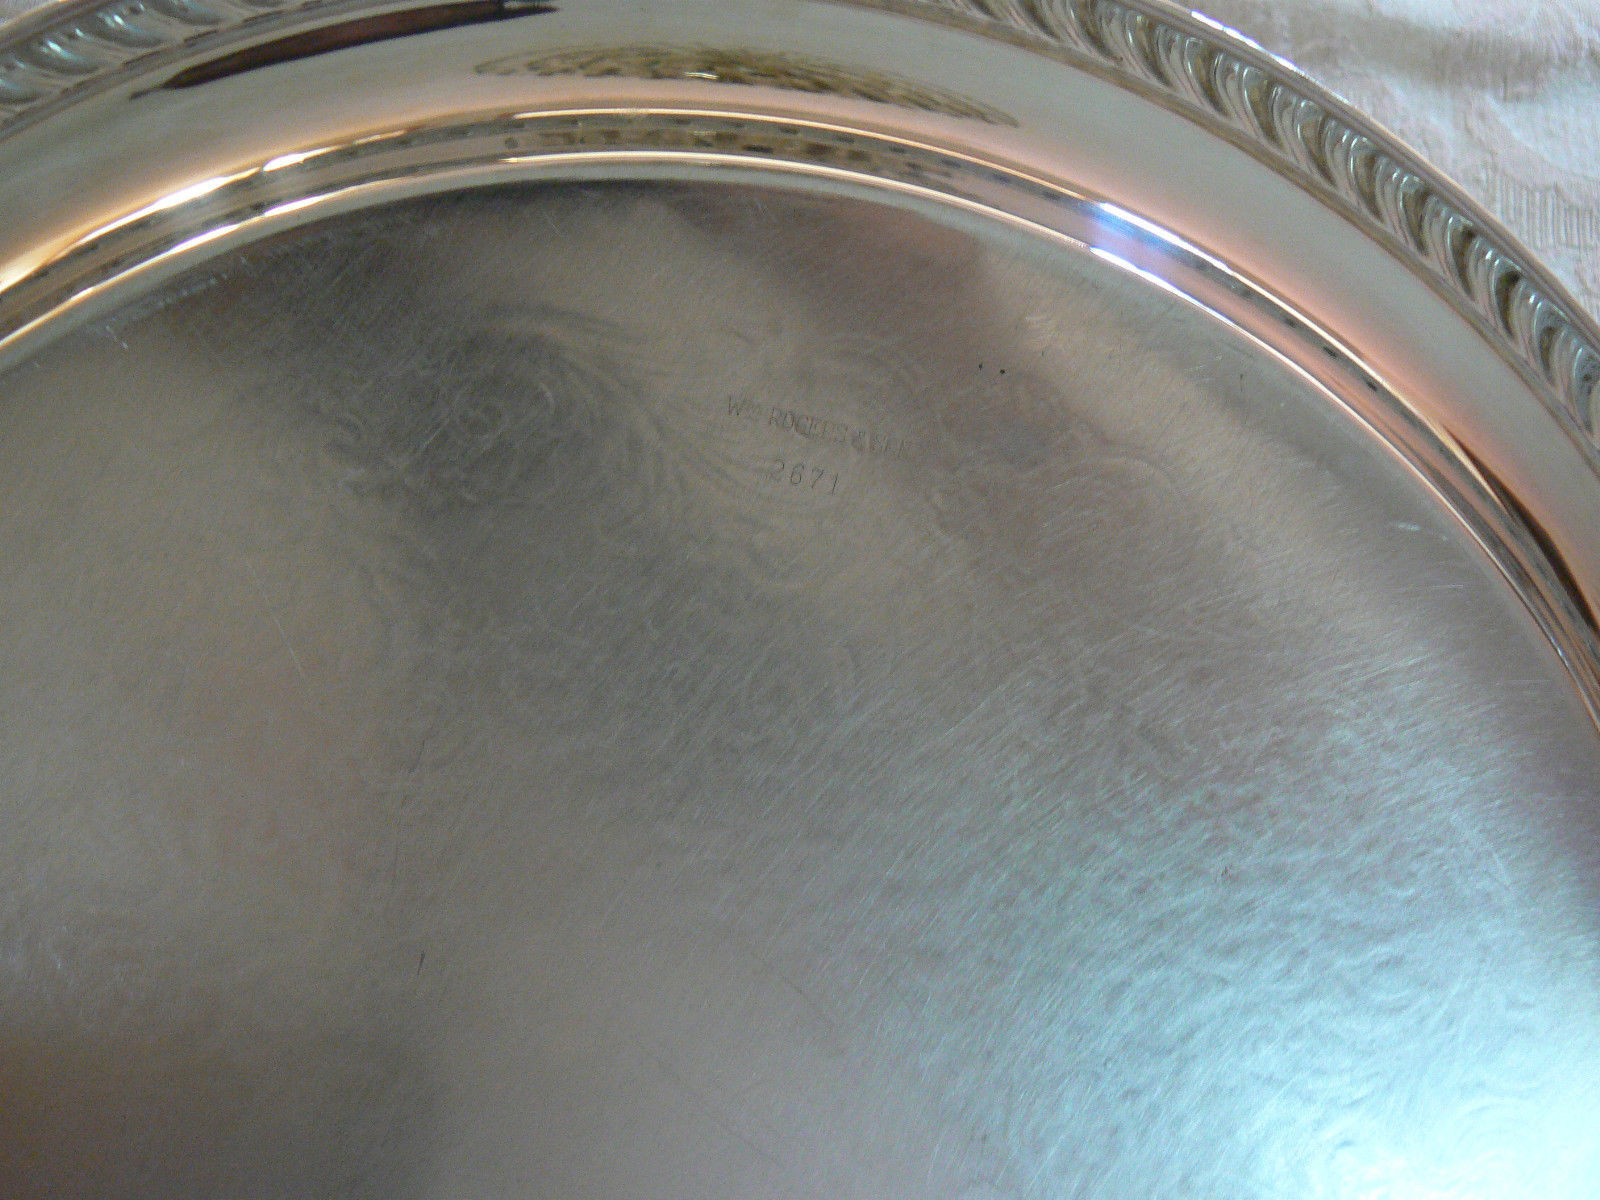 Vintage Wm Rogers & Son Silver Plate Scrolled Round Serving Platter